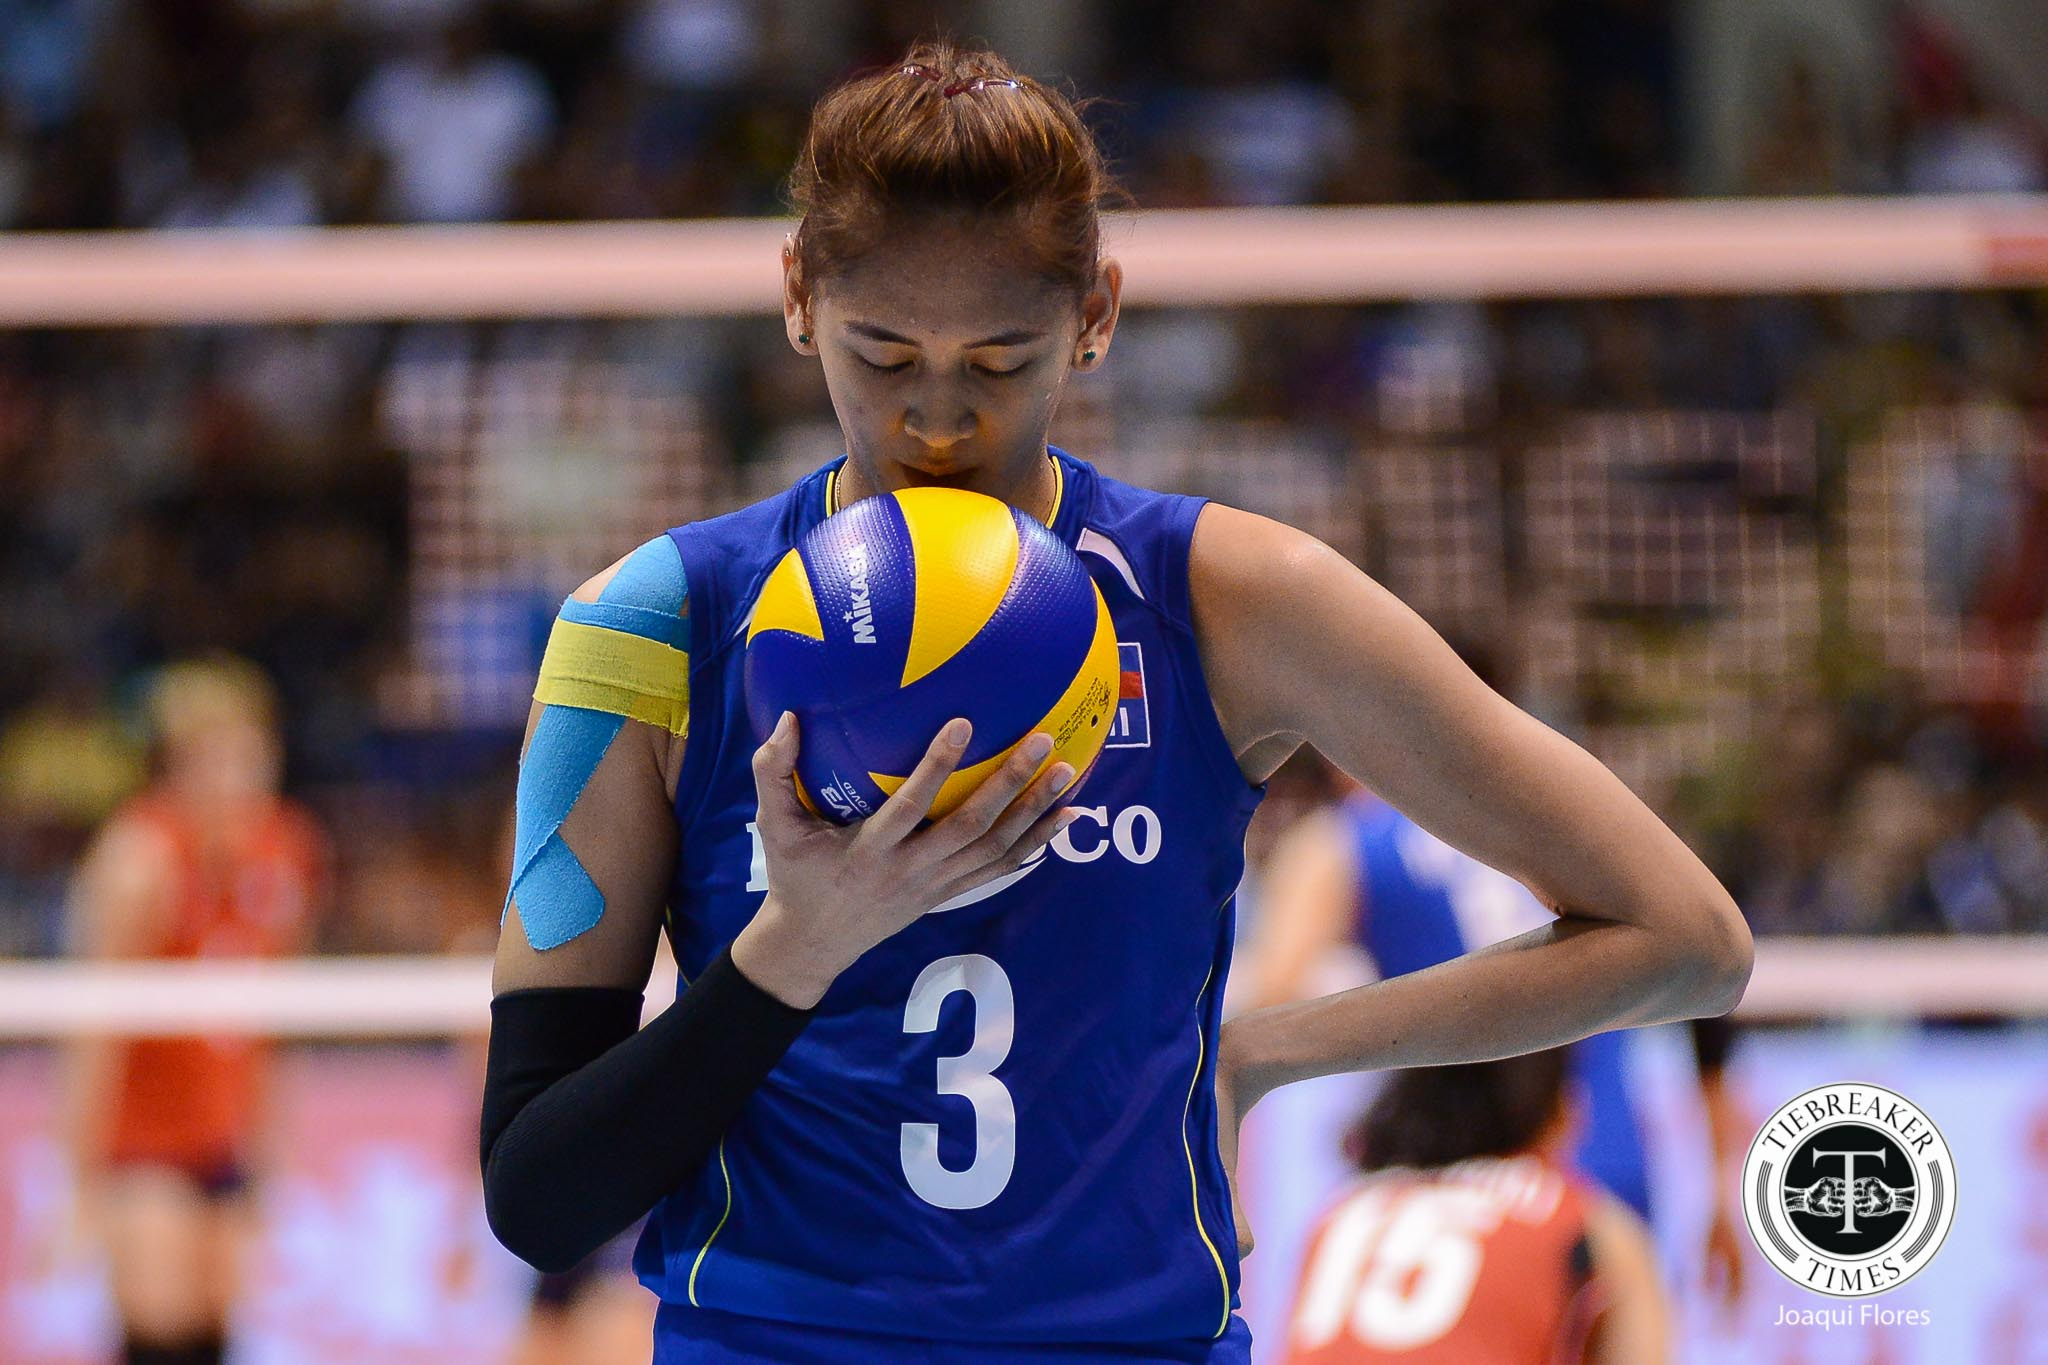 Philippine Sports News - Tiebreaker Times Philippines slips against Chinese Taipei, remains in hunt for seventh place 2017 Asian Women's News Volleyball  Wei-Hua Wu Kim Fajardo Jaja Santiago Francis Vicente Dawn Macandili Chinese Taipei (Volleyball) Alyssa Valdez